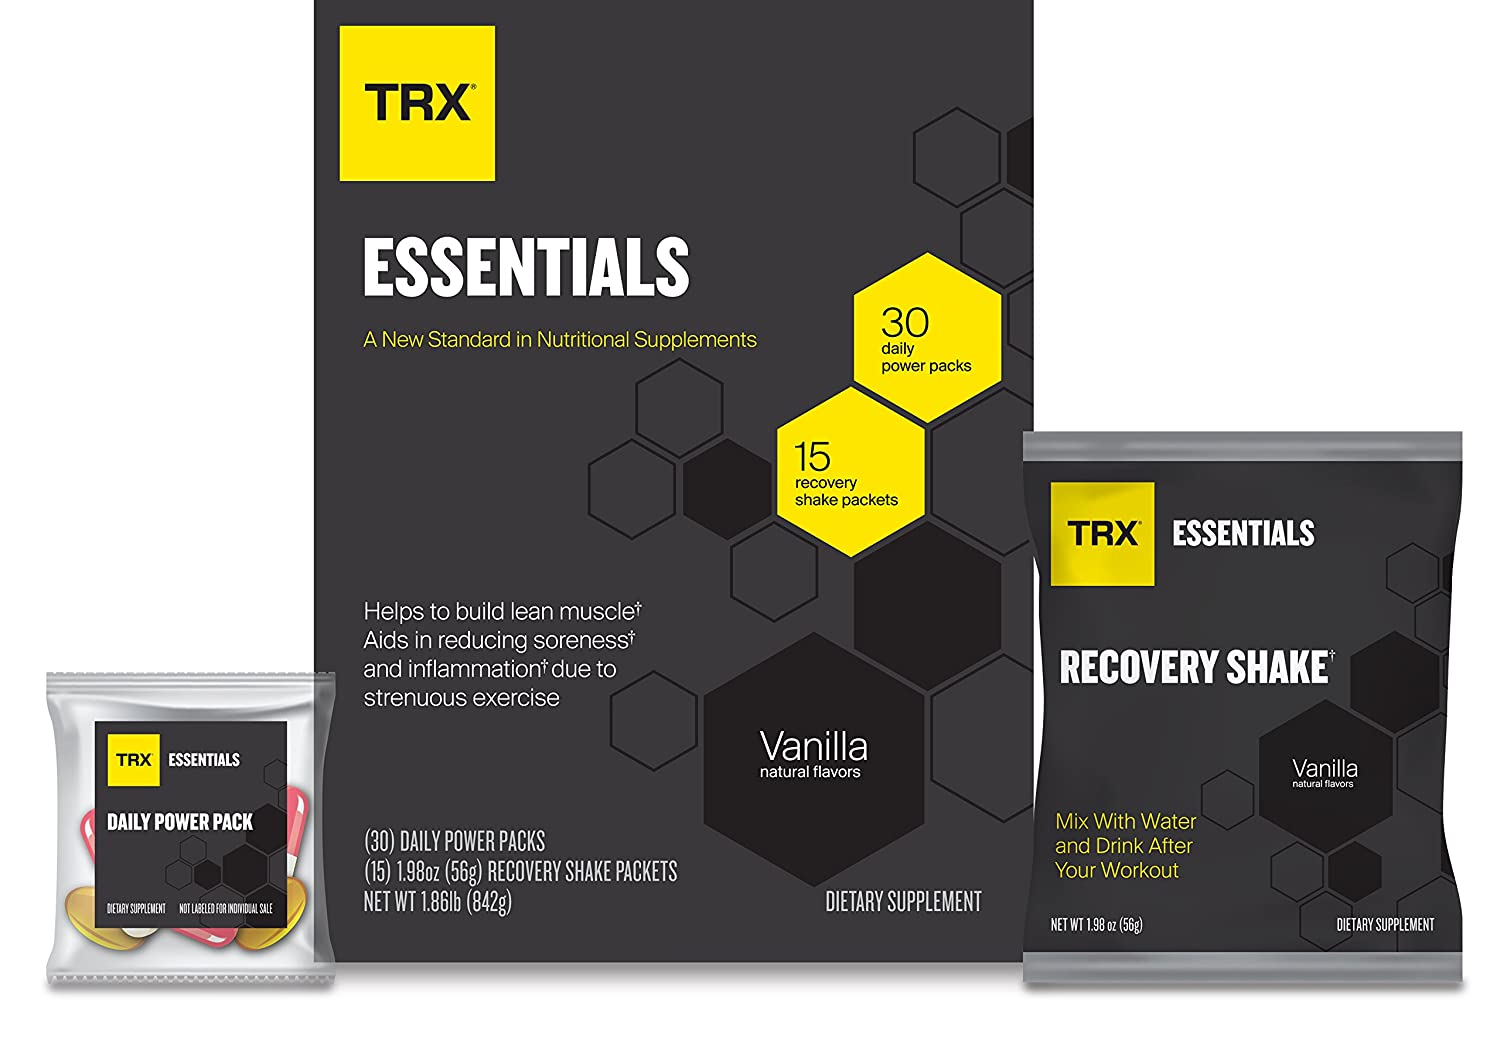 TRX Essentials 30-Day Multi-Nutrient and Post-Workout Recovery System, Designed to Help Build Lean Muscle, Reduce Soreness and Aid Recovery, Vanilla (30 Daily Power Packs and 15 Recovery Shake Packs)